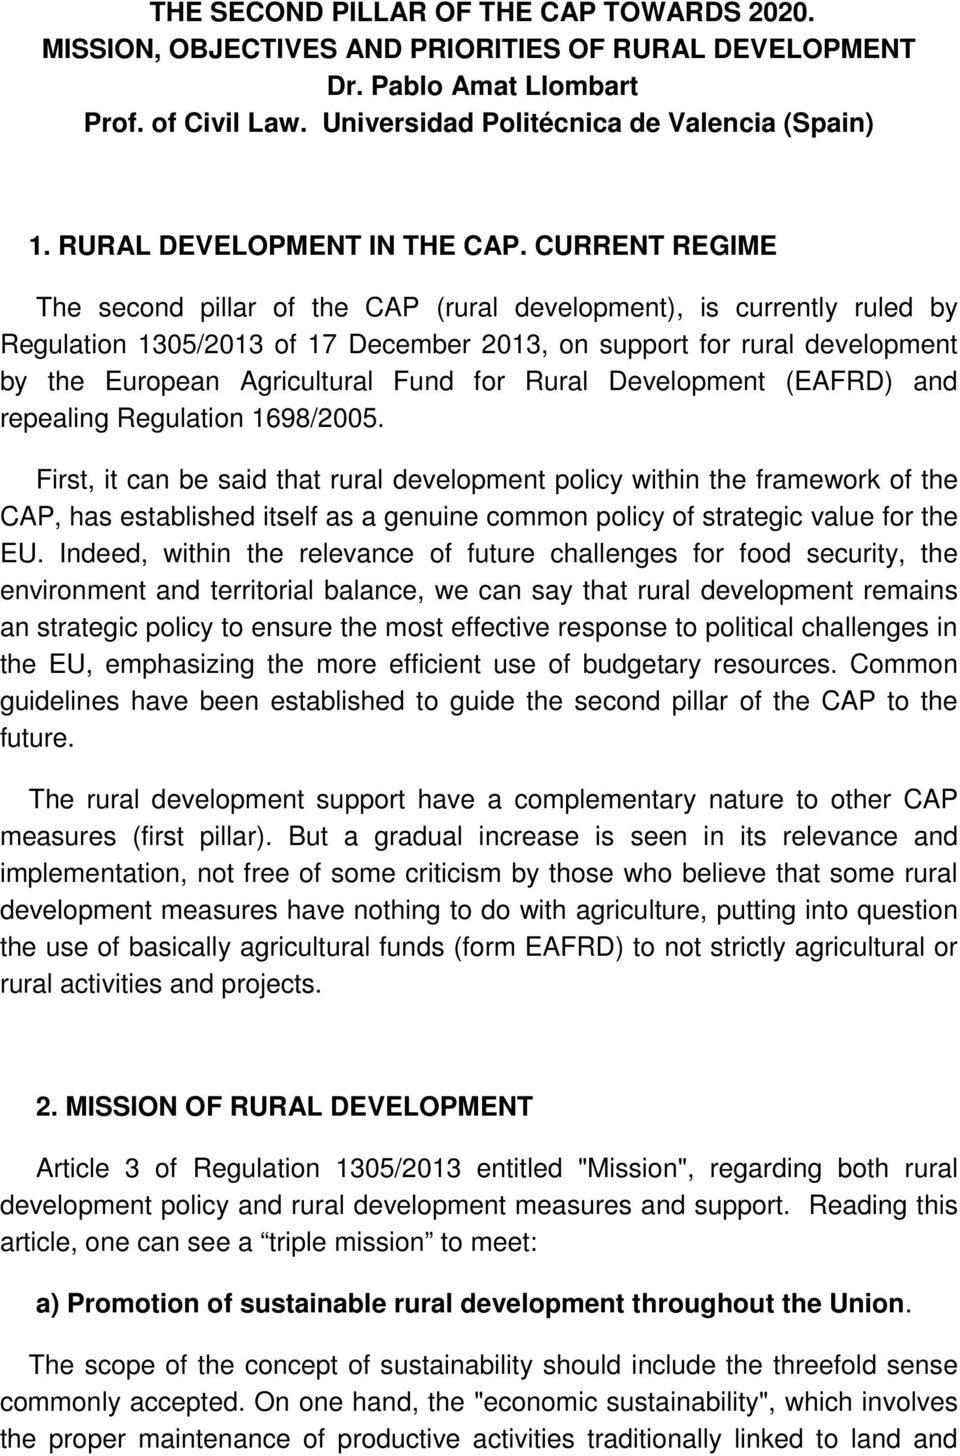 CURRENT REGIME The second pillar of the CAP (rural development), is currently ruled by Regulation 1305/2013 of 17 December 2013, on support for rural development by the European Agricultural Fund for